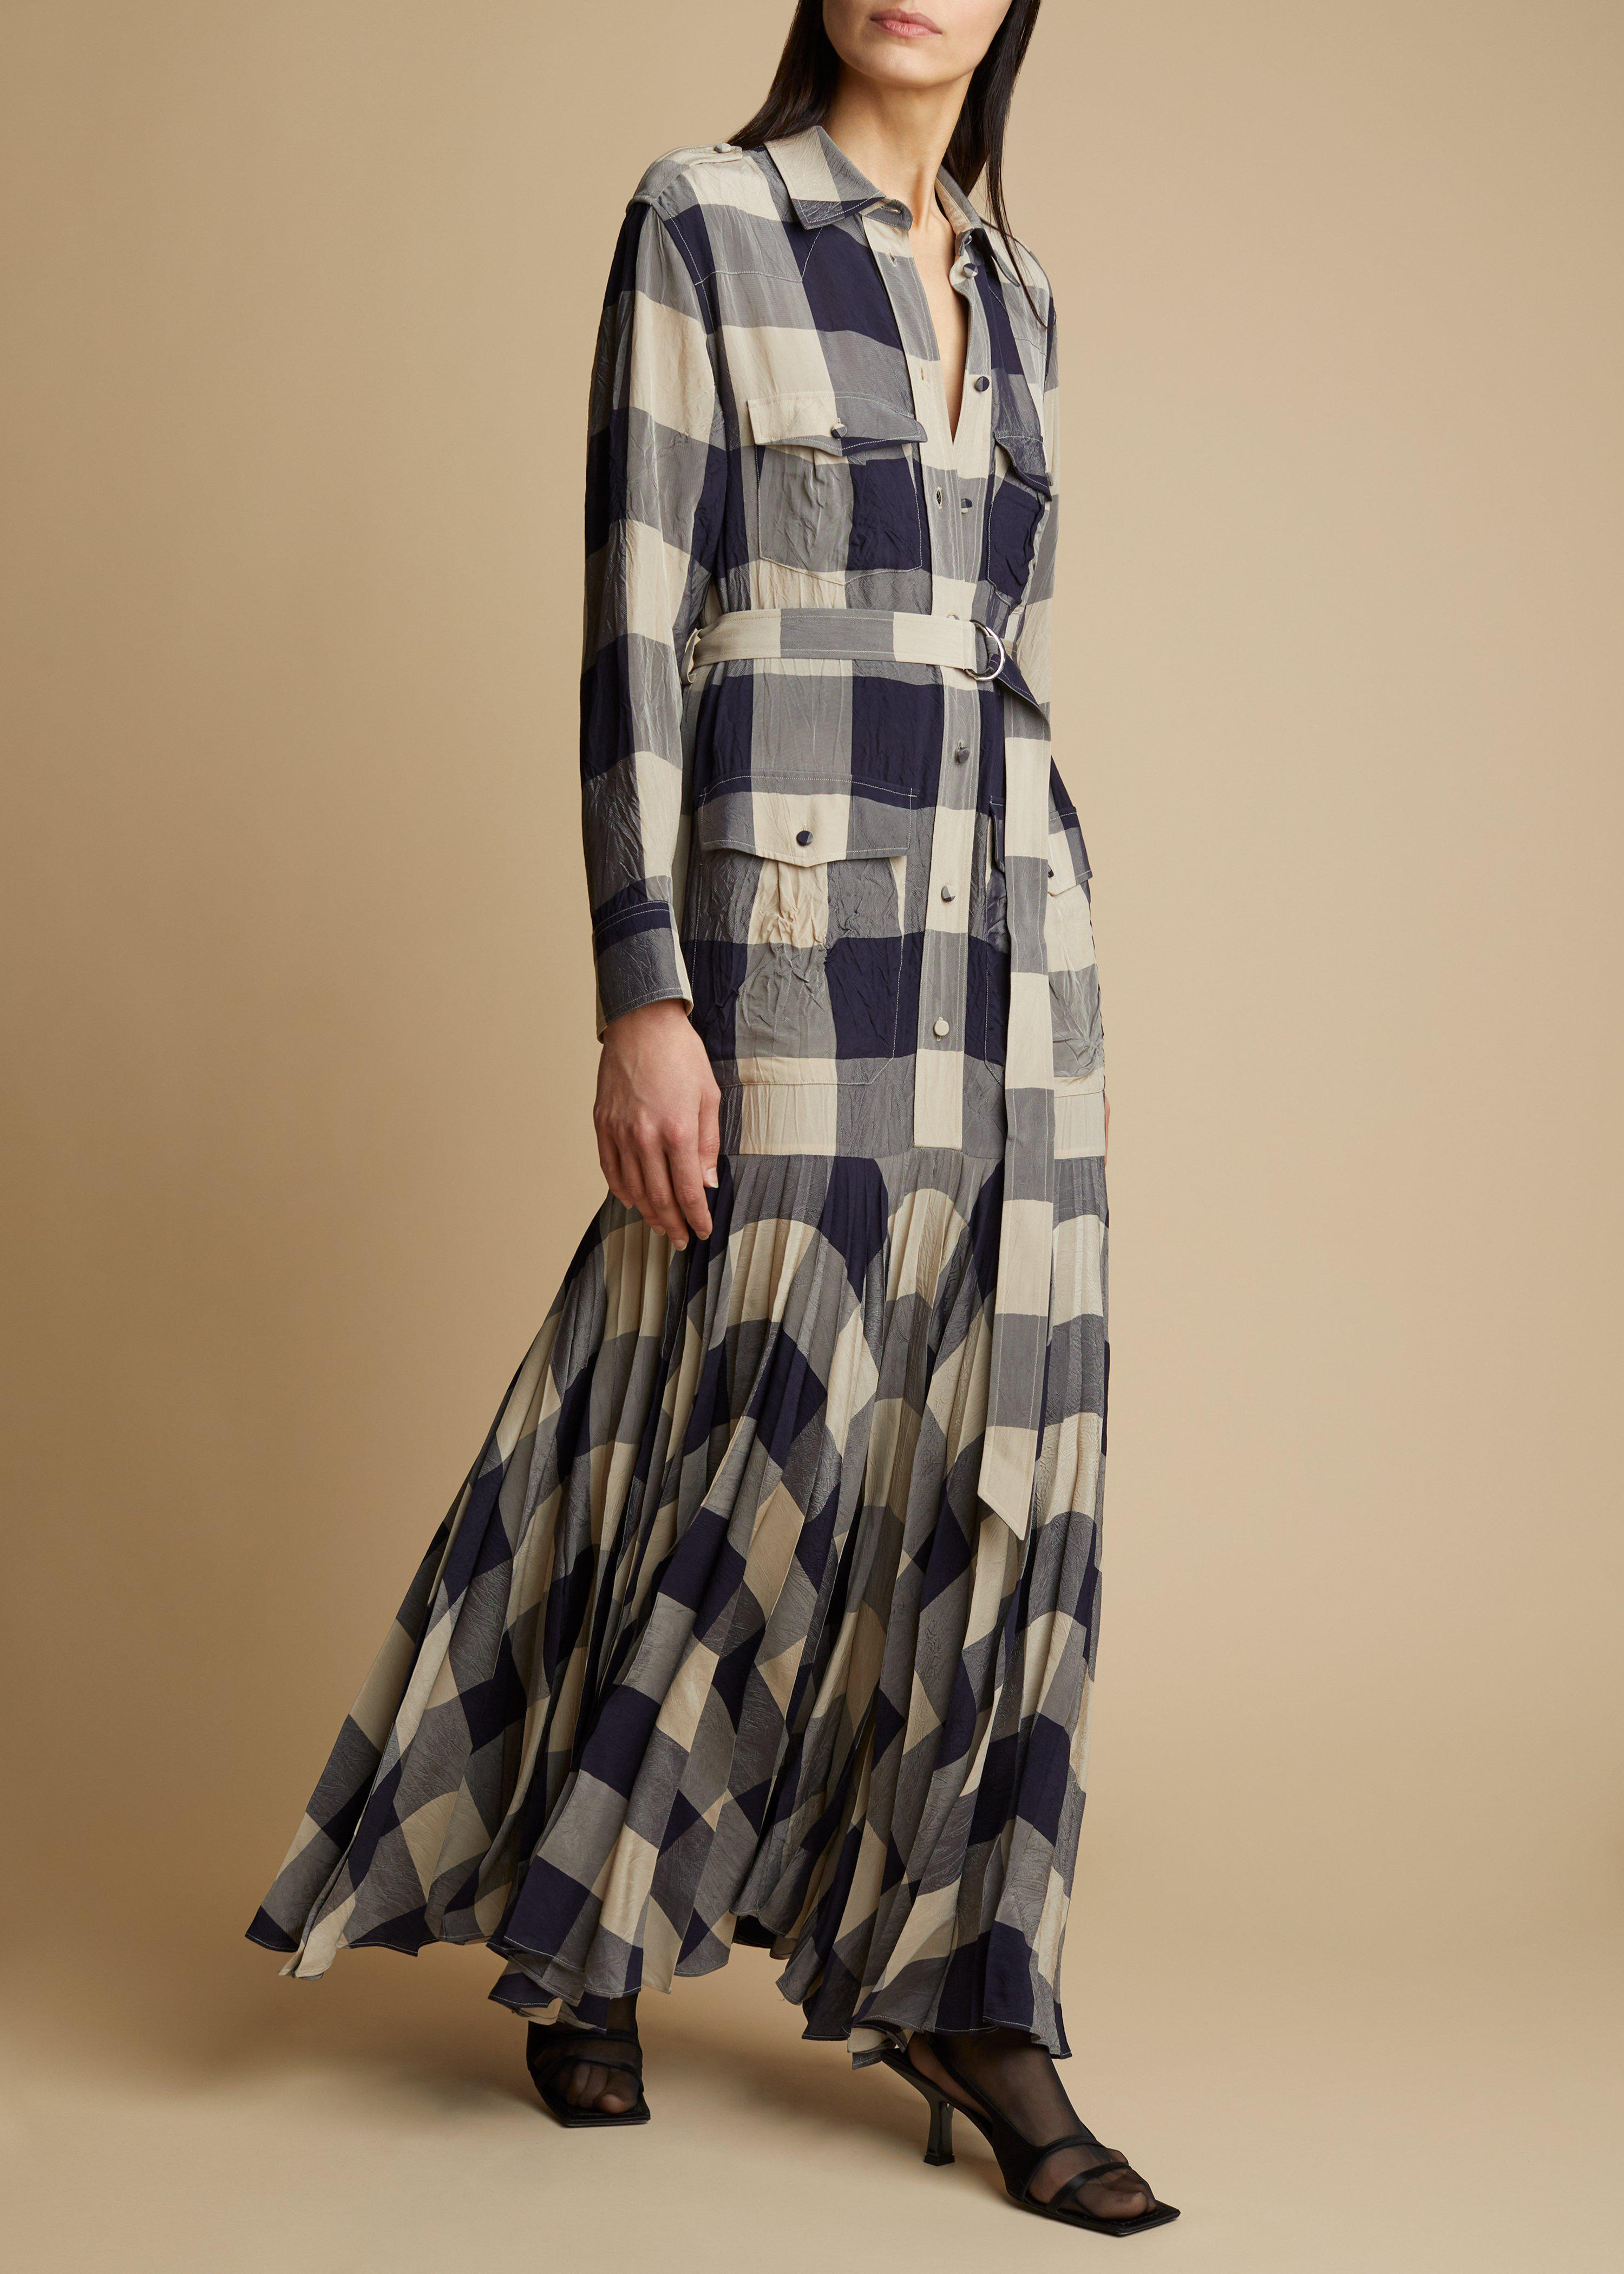 The Lyla Dress in Navy and Sand Check